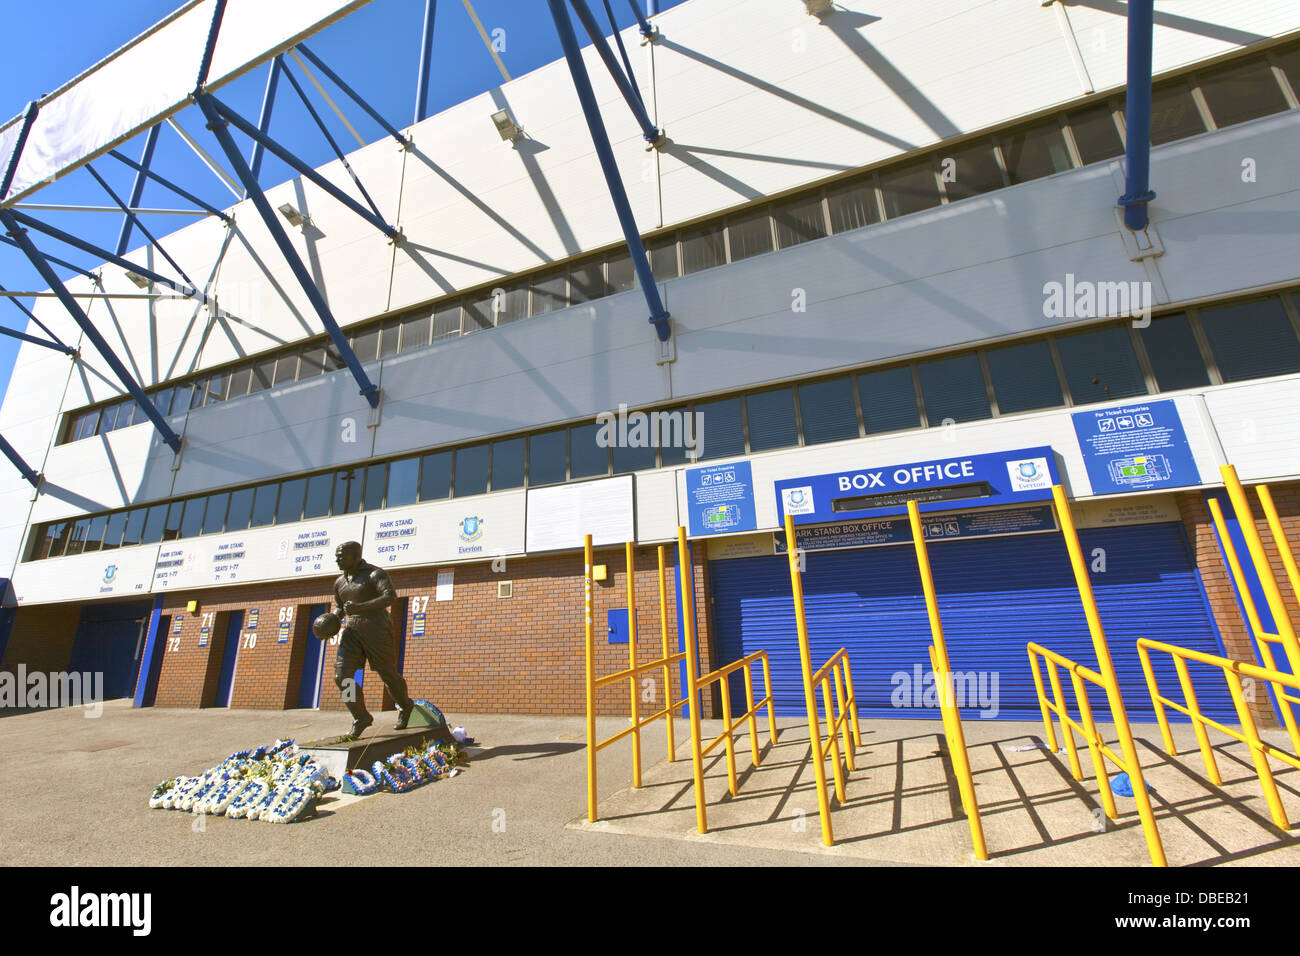 Goodison Park is home of Everton Football Club an English Premier League football club based in Liverpool. Stock Photo